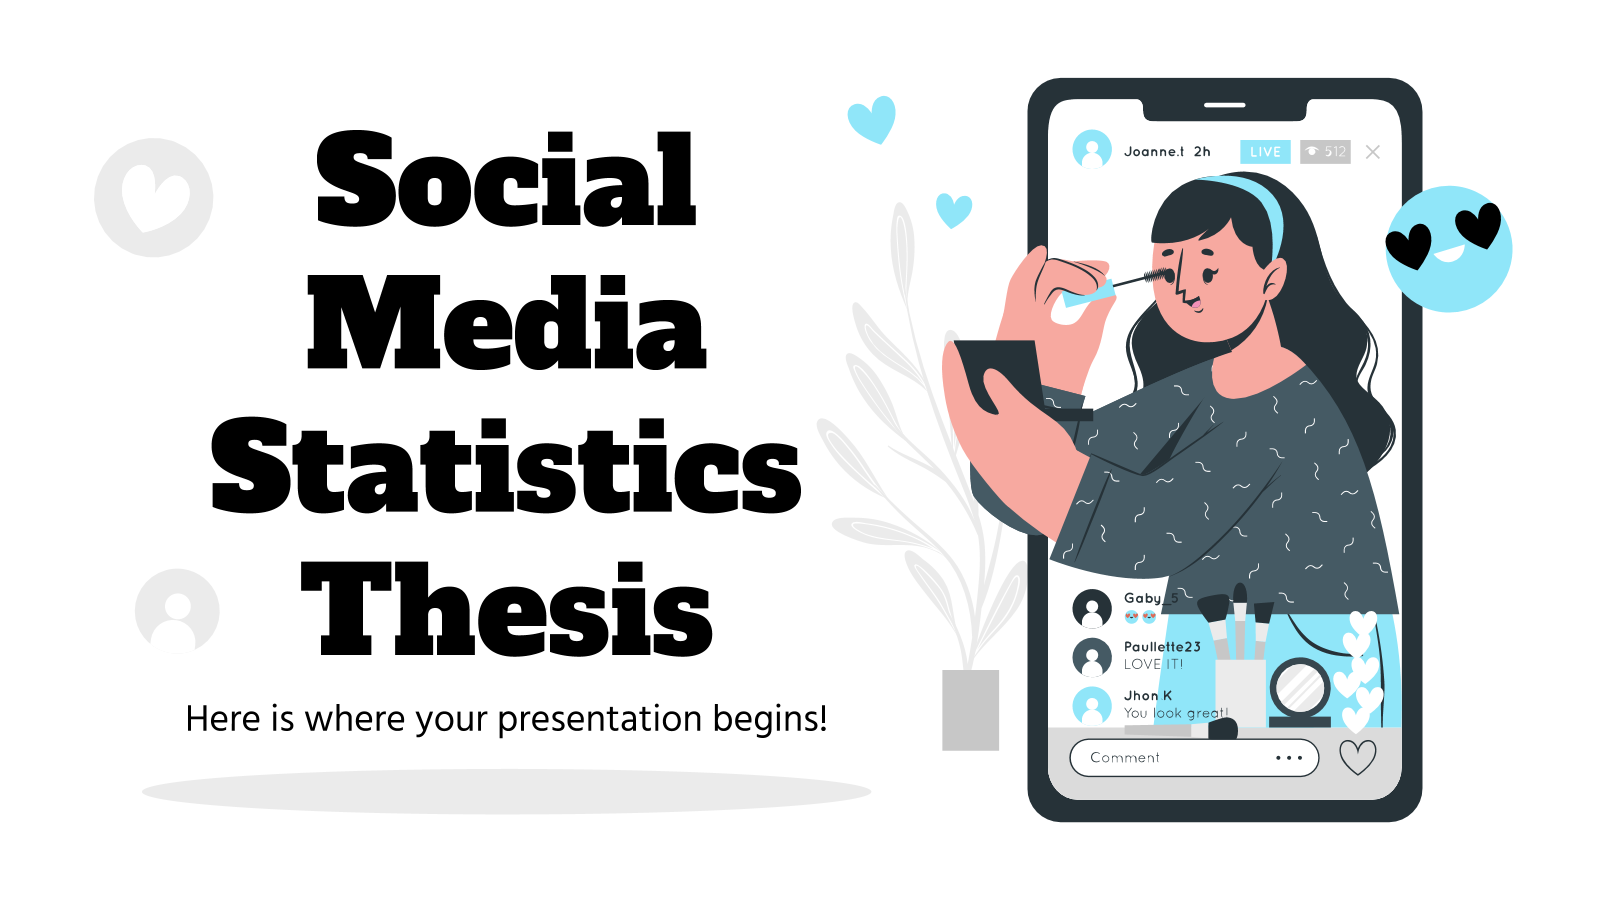 Social Media Statistics Thesis presentation template